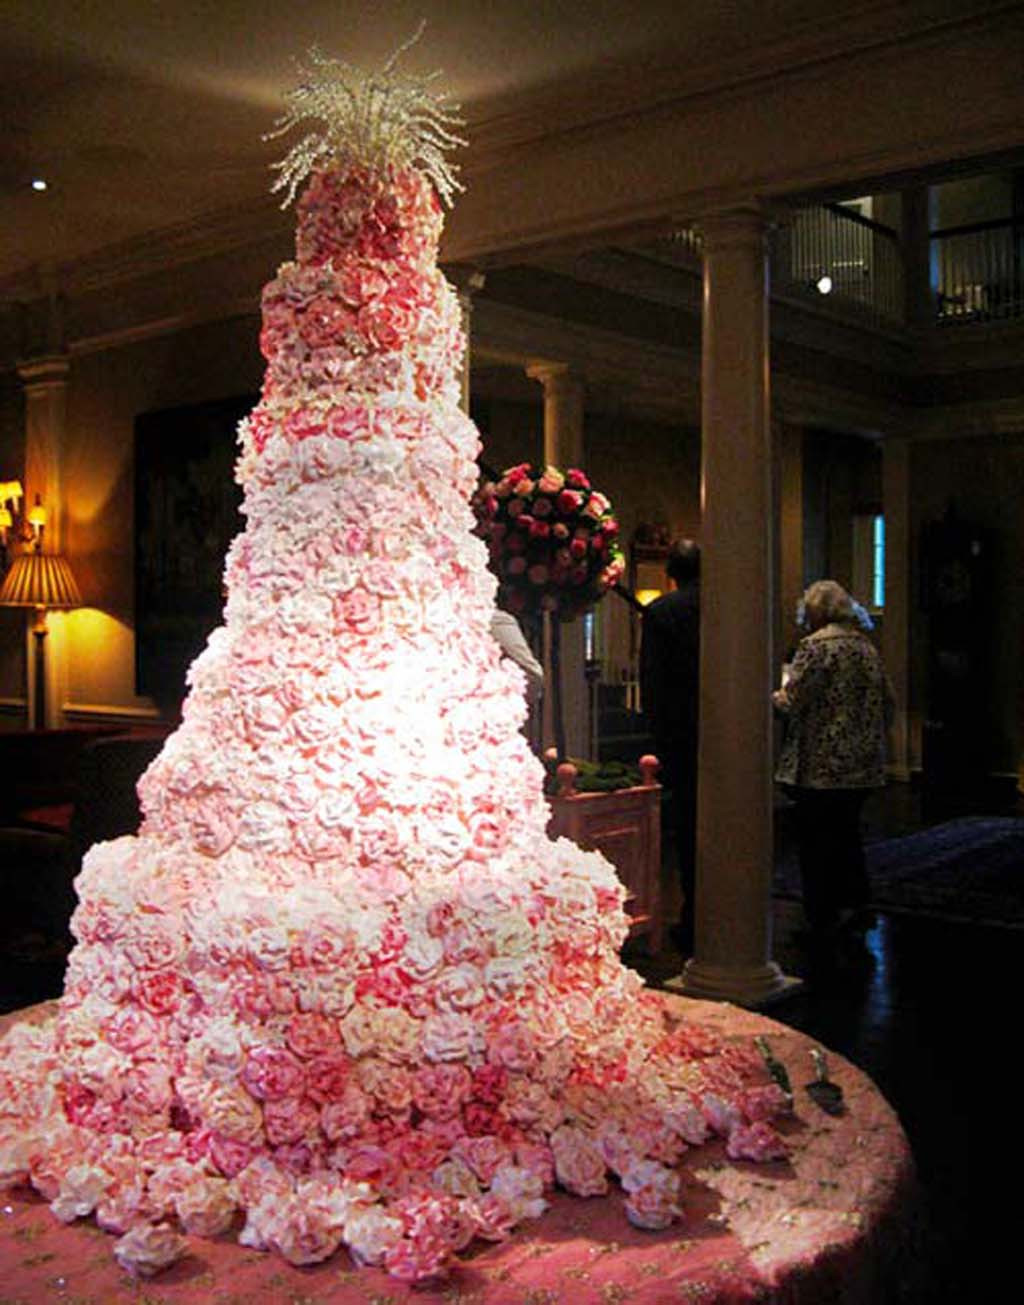 The Best Wedding Cakes  Best wedding cakes ever wallpaper 4 wedding cakes wedding